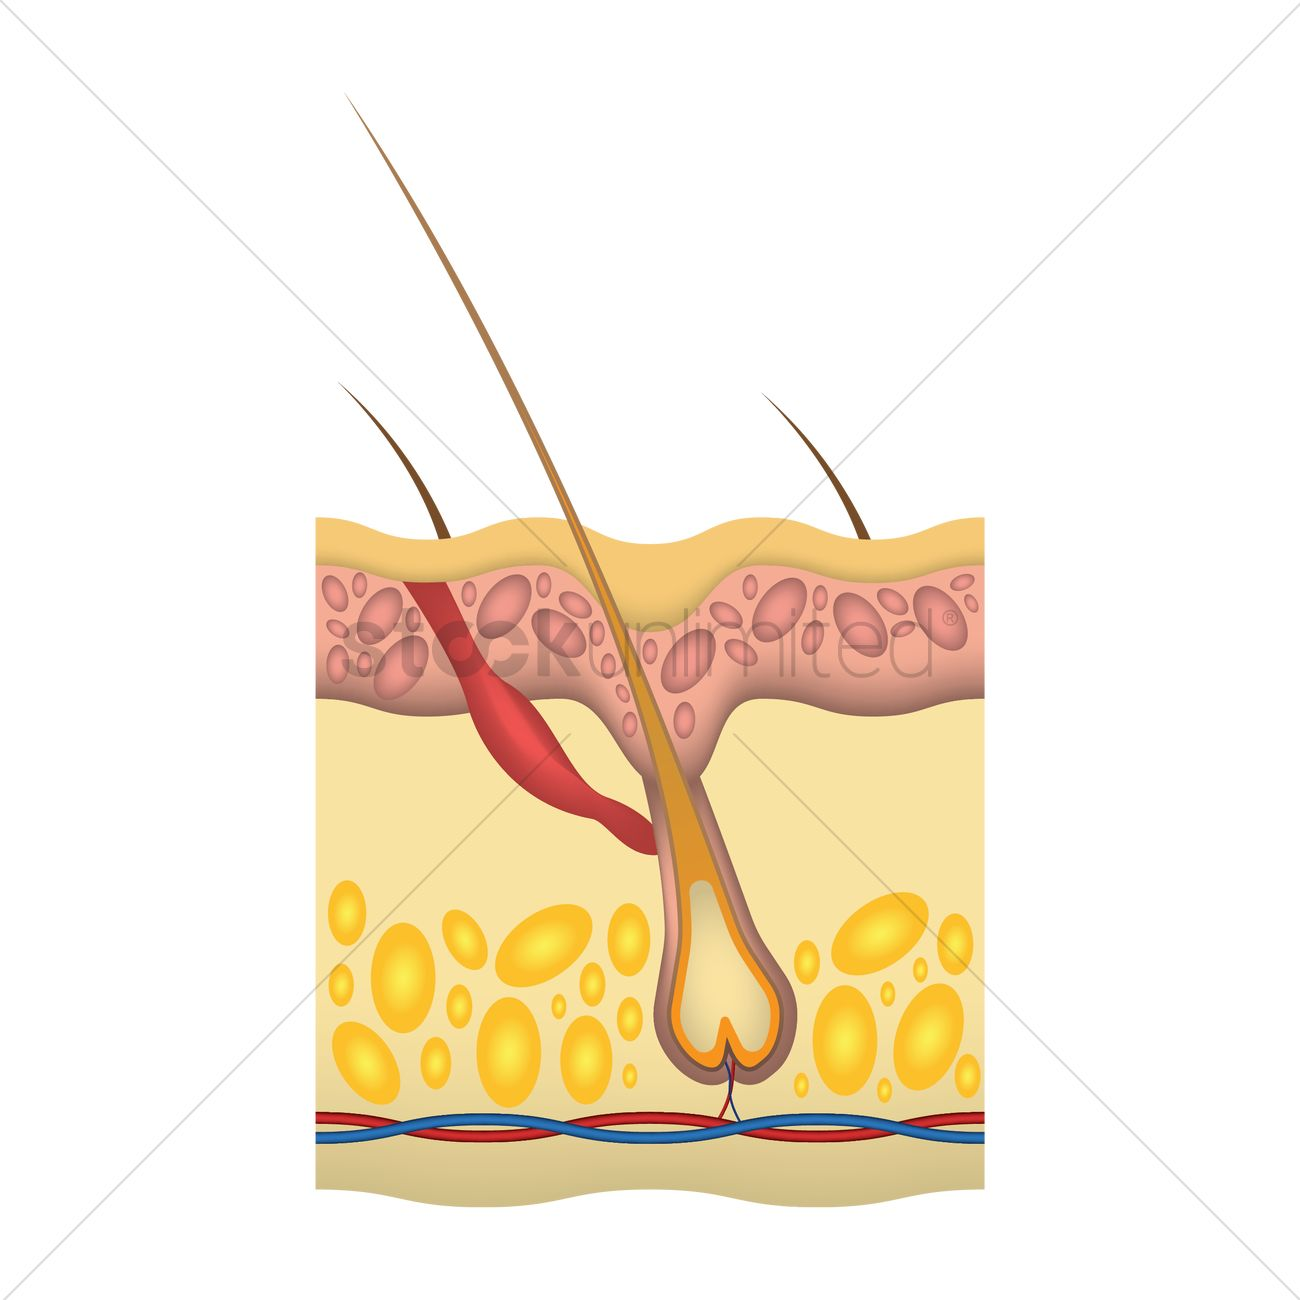 Anatomy Of Skin Layers Vector Image 1759618 Stockunlimited